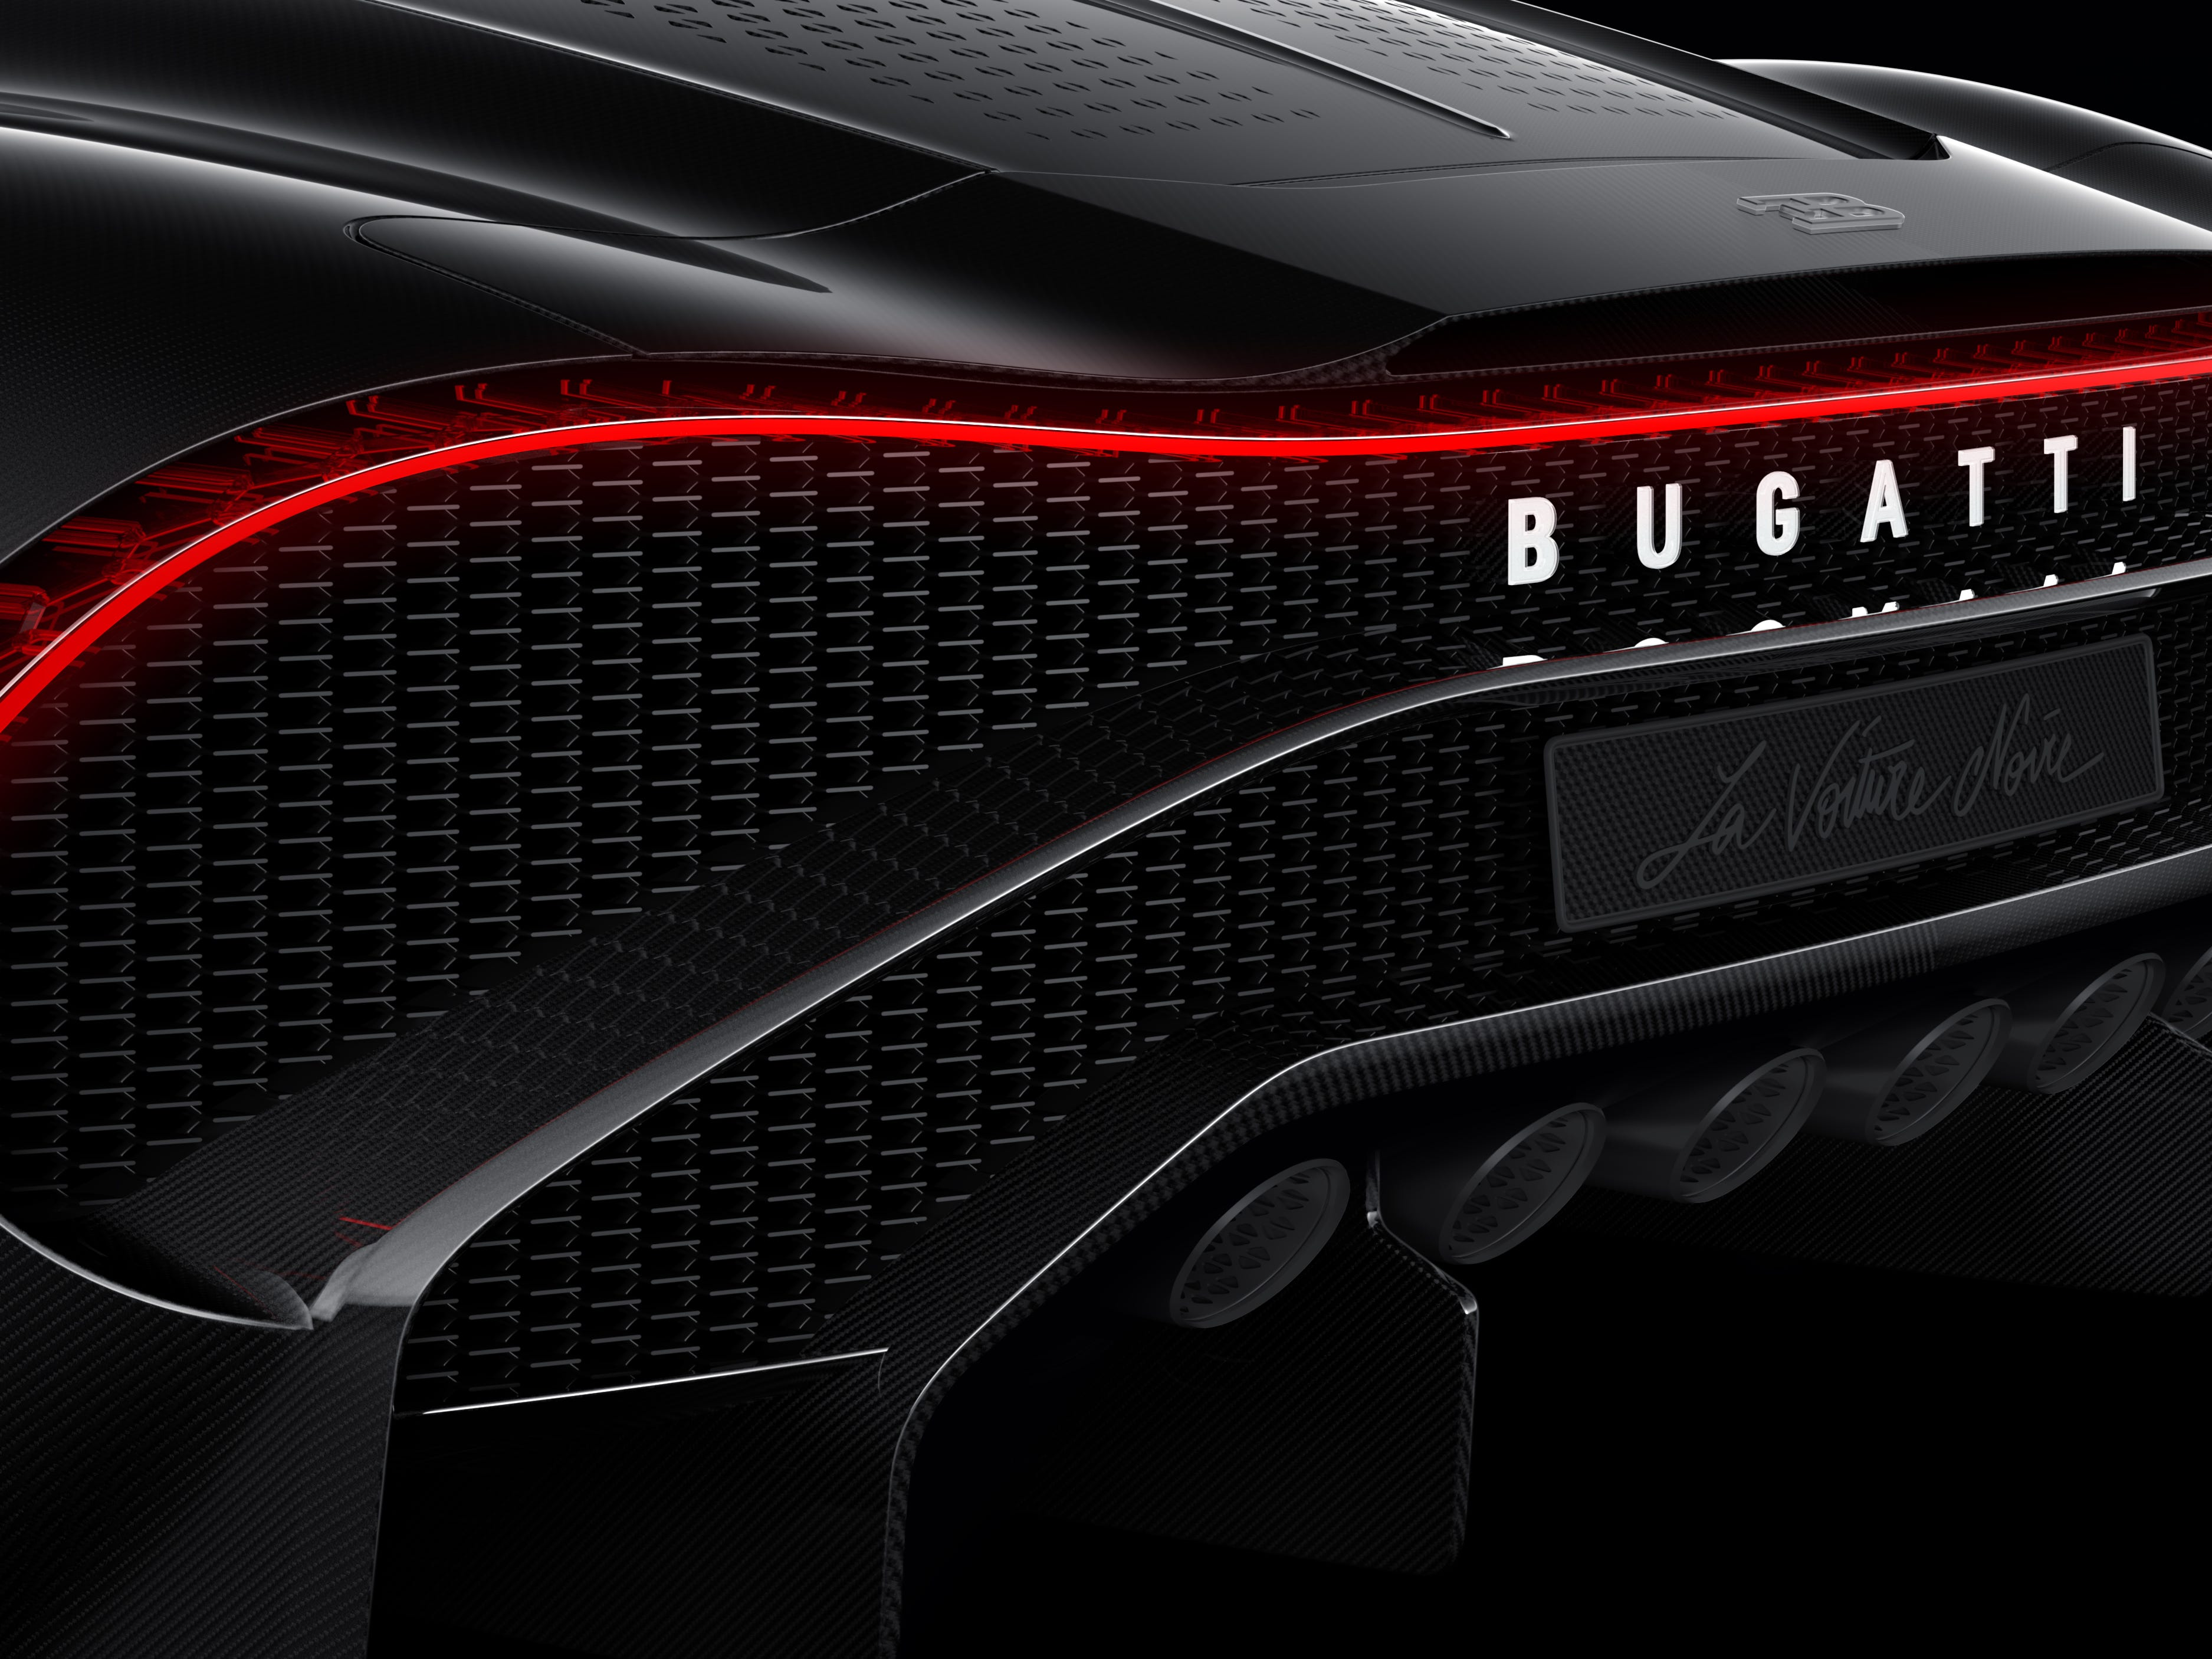 The Bugatti's six exhaust pipes speak to a market for power and noise.